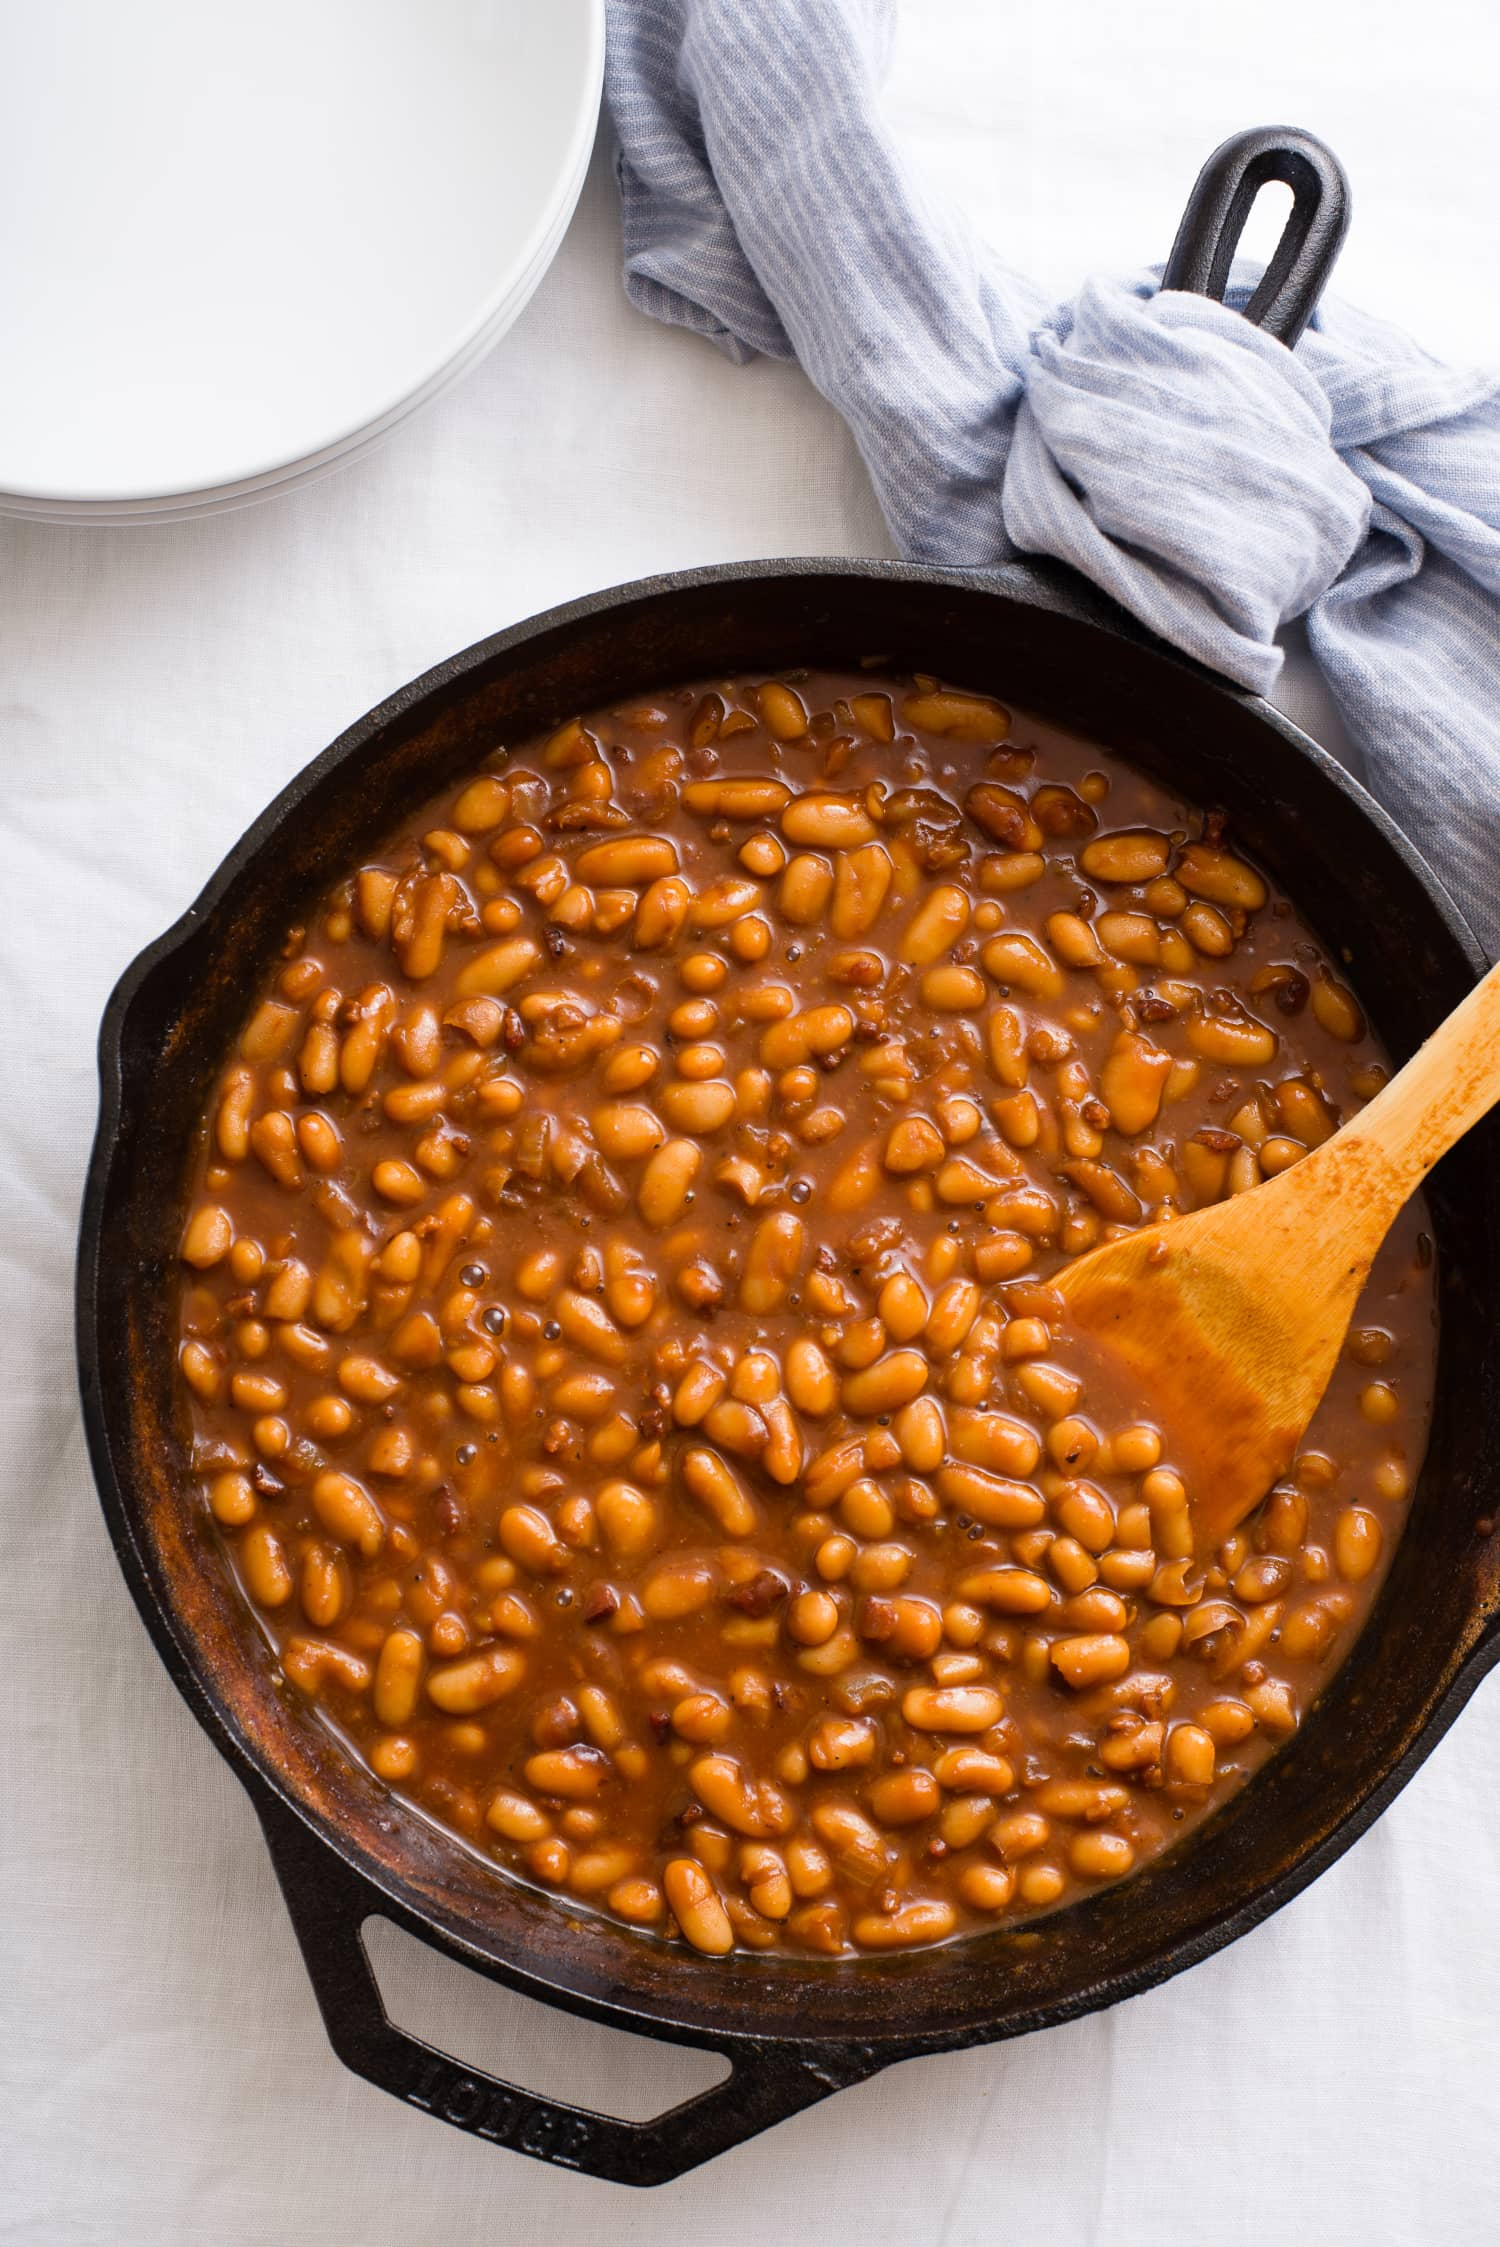 Recipe: Fast and Fancy Pork and Beans